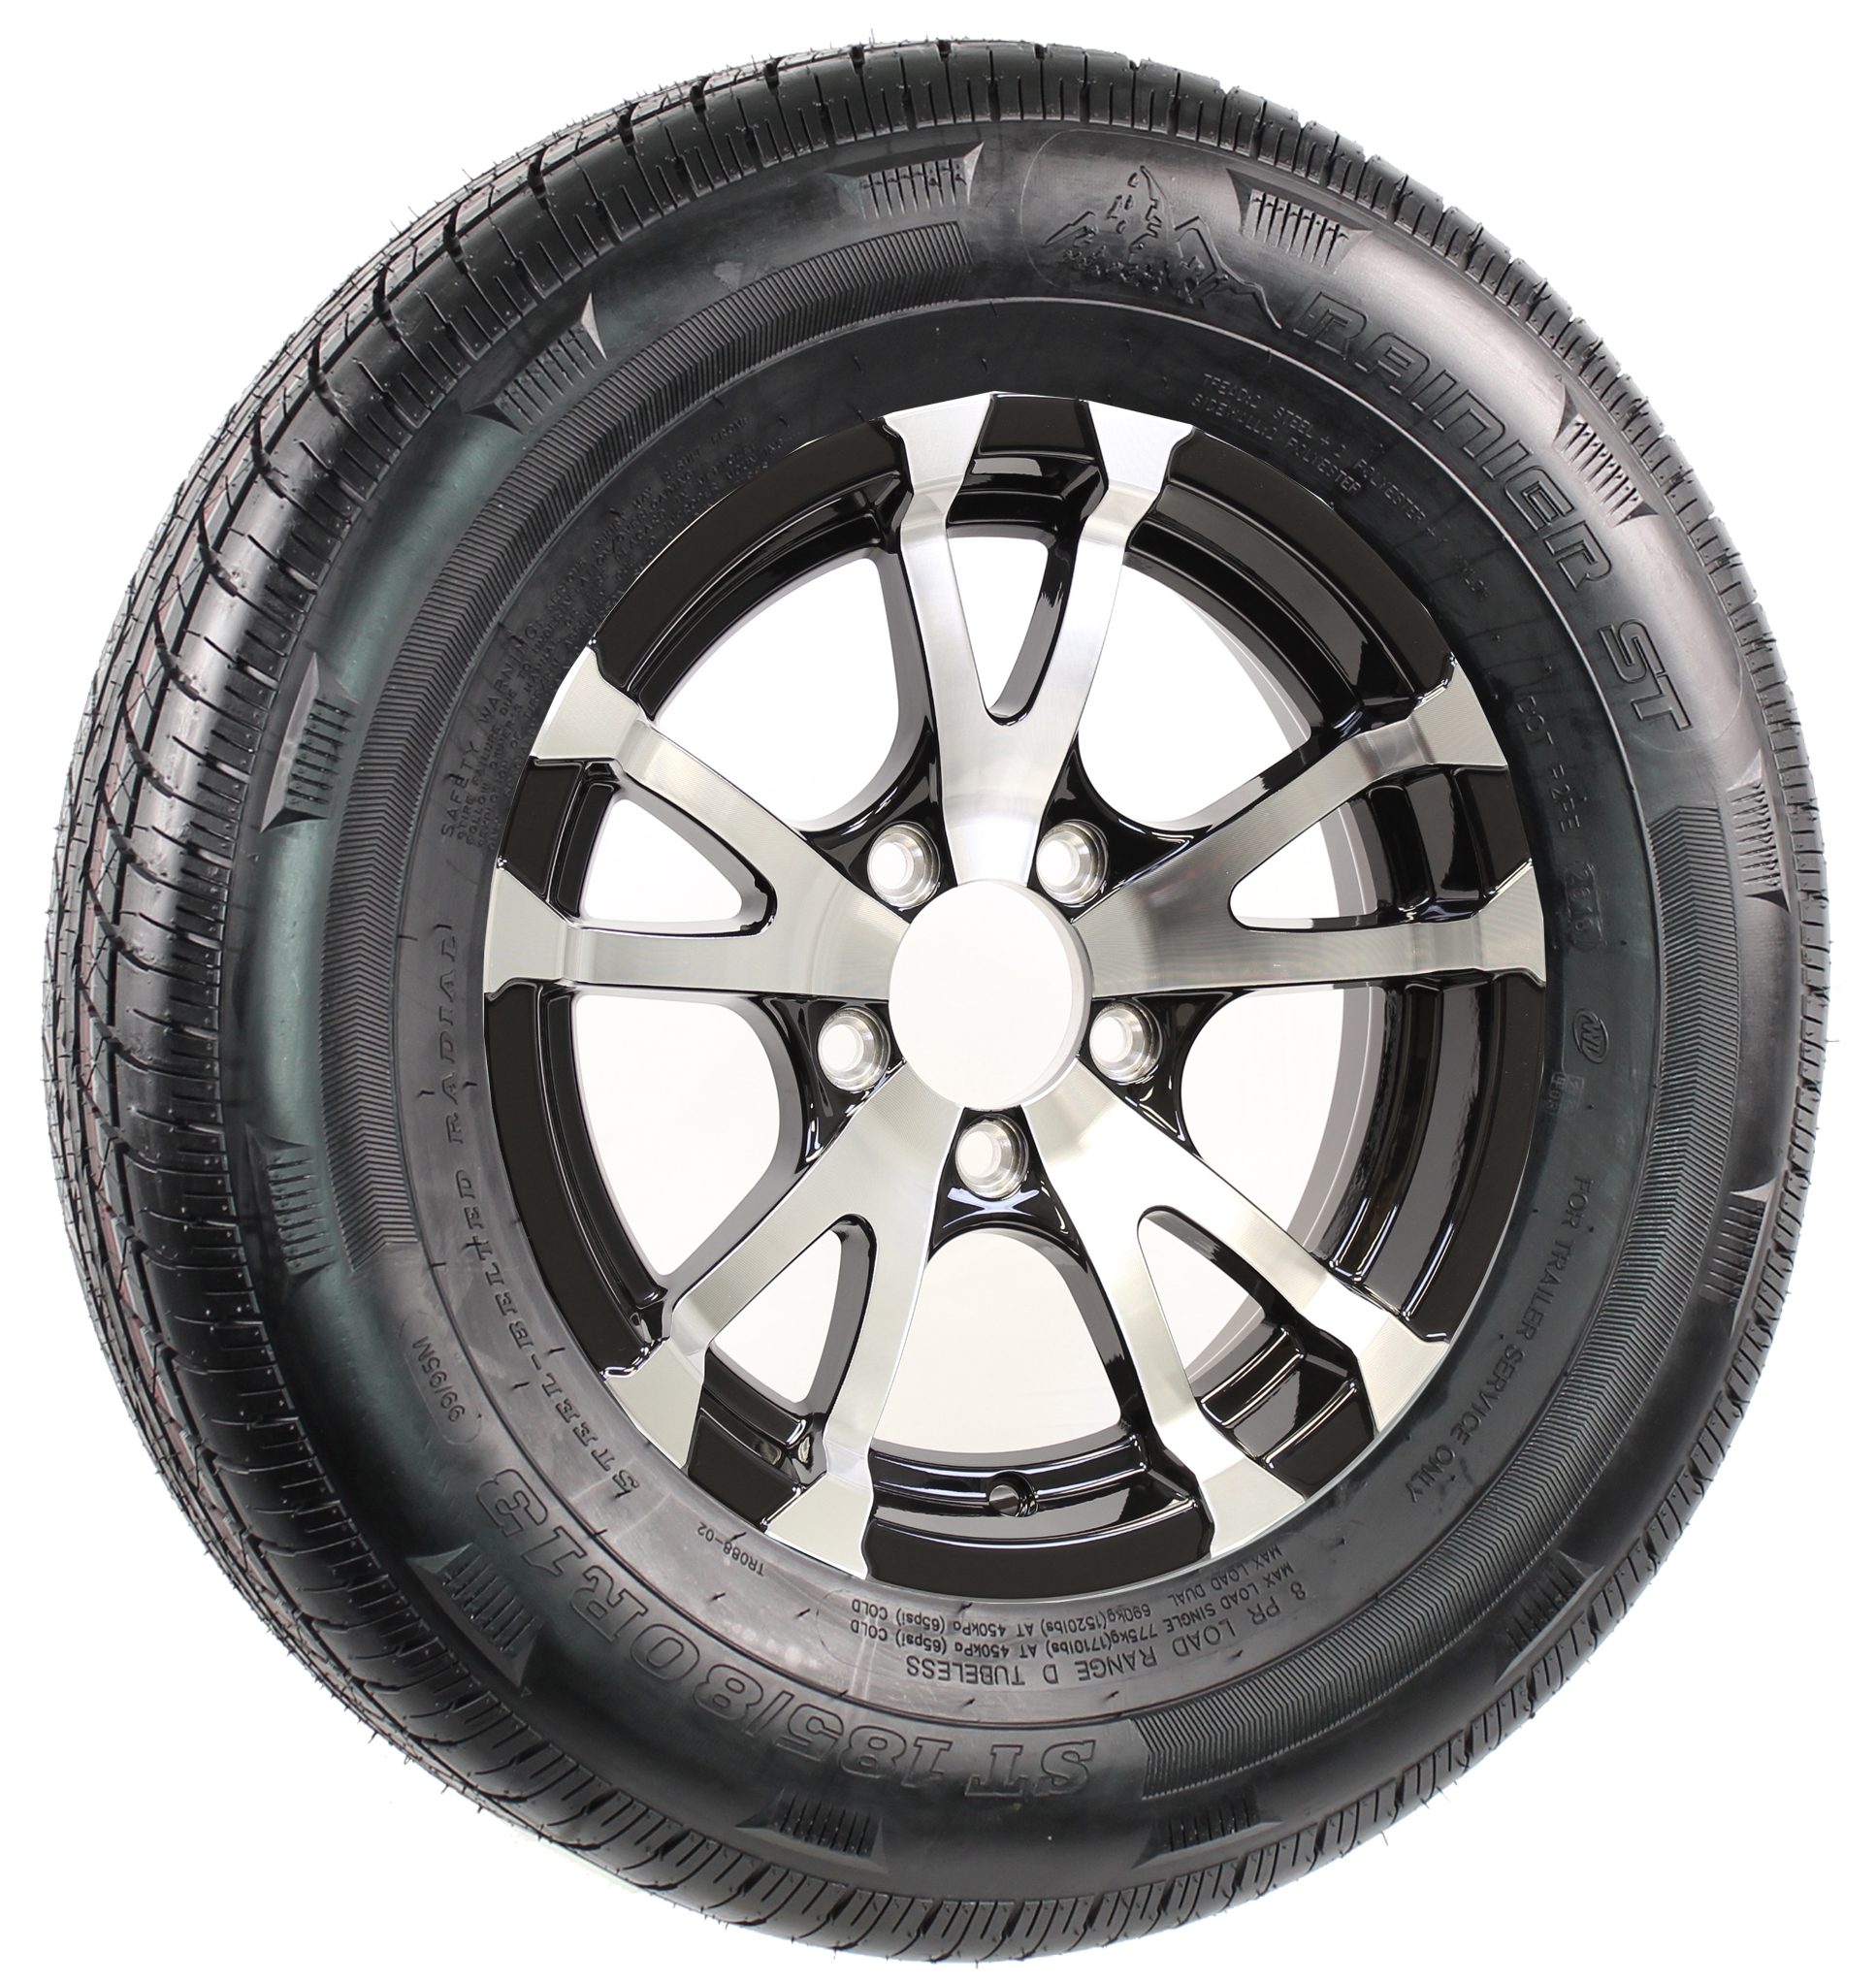 "Rainier ST185/80R13 LRD Radial on 13"" 5-Lug Avalanche Assembly Image"